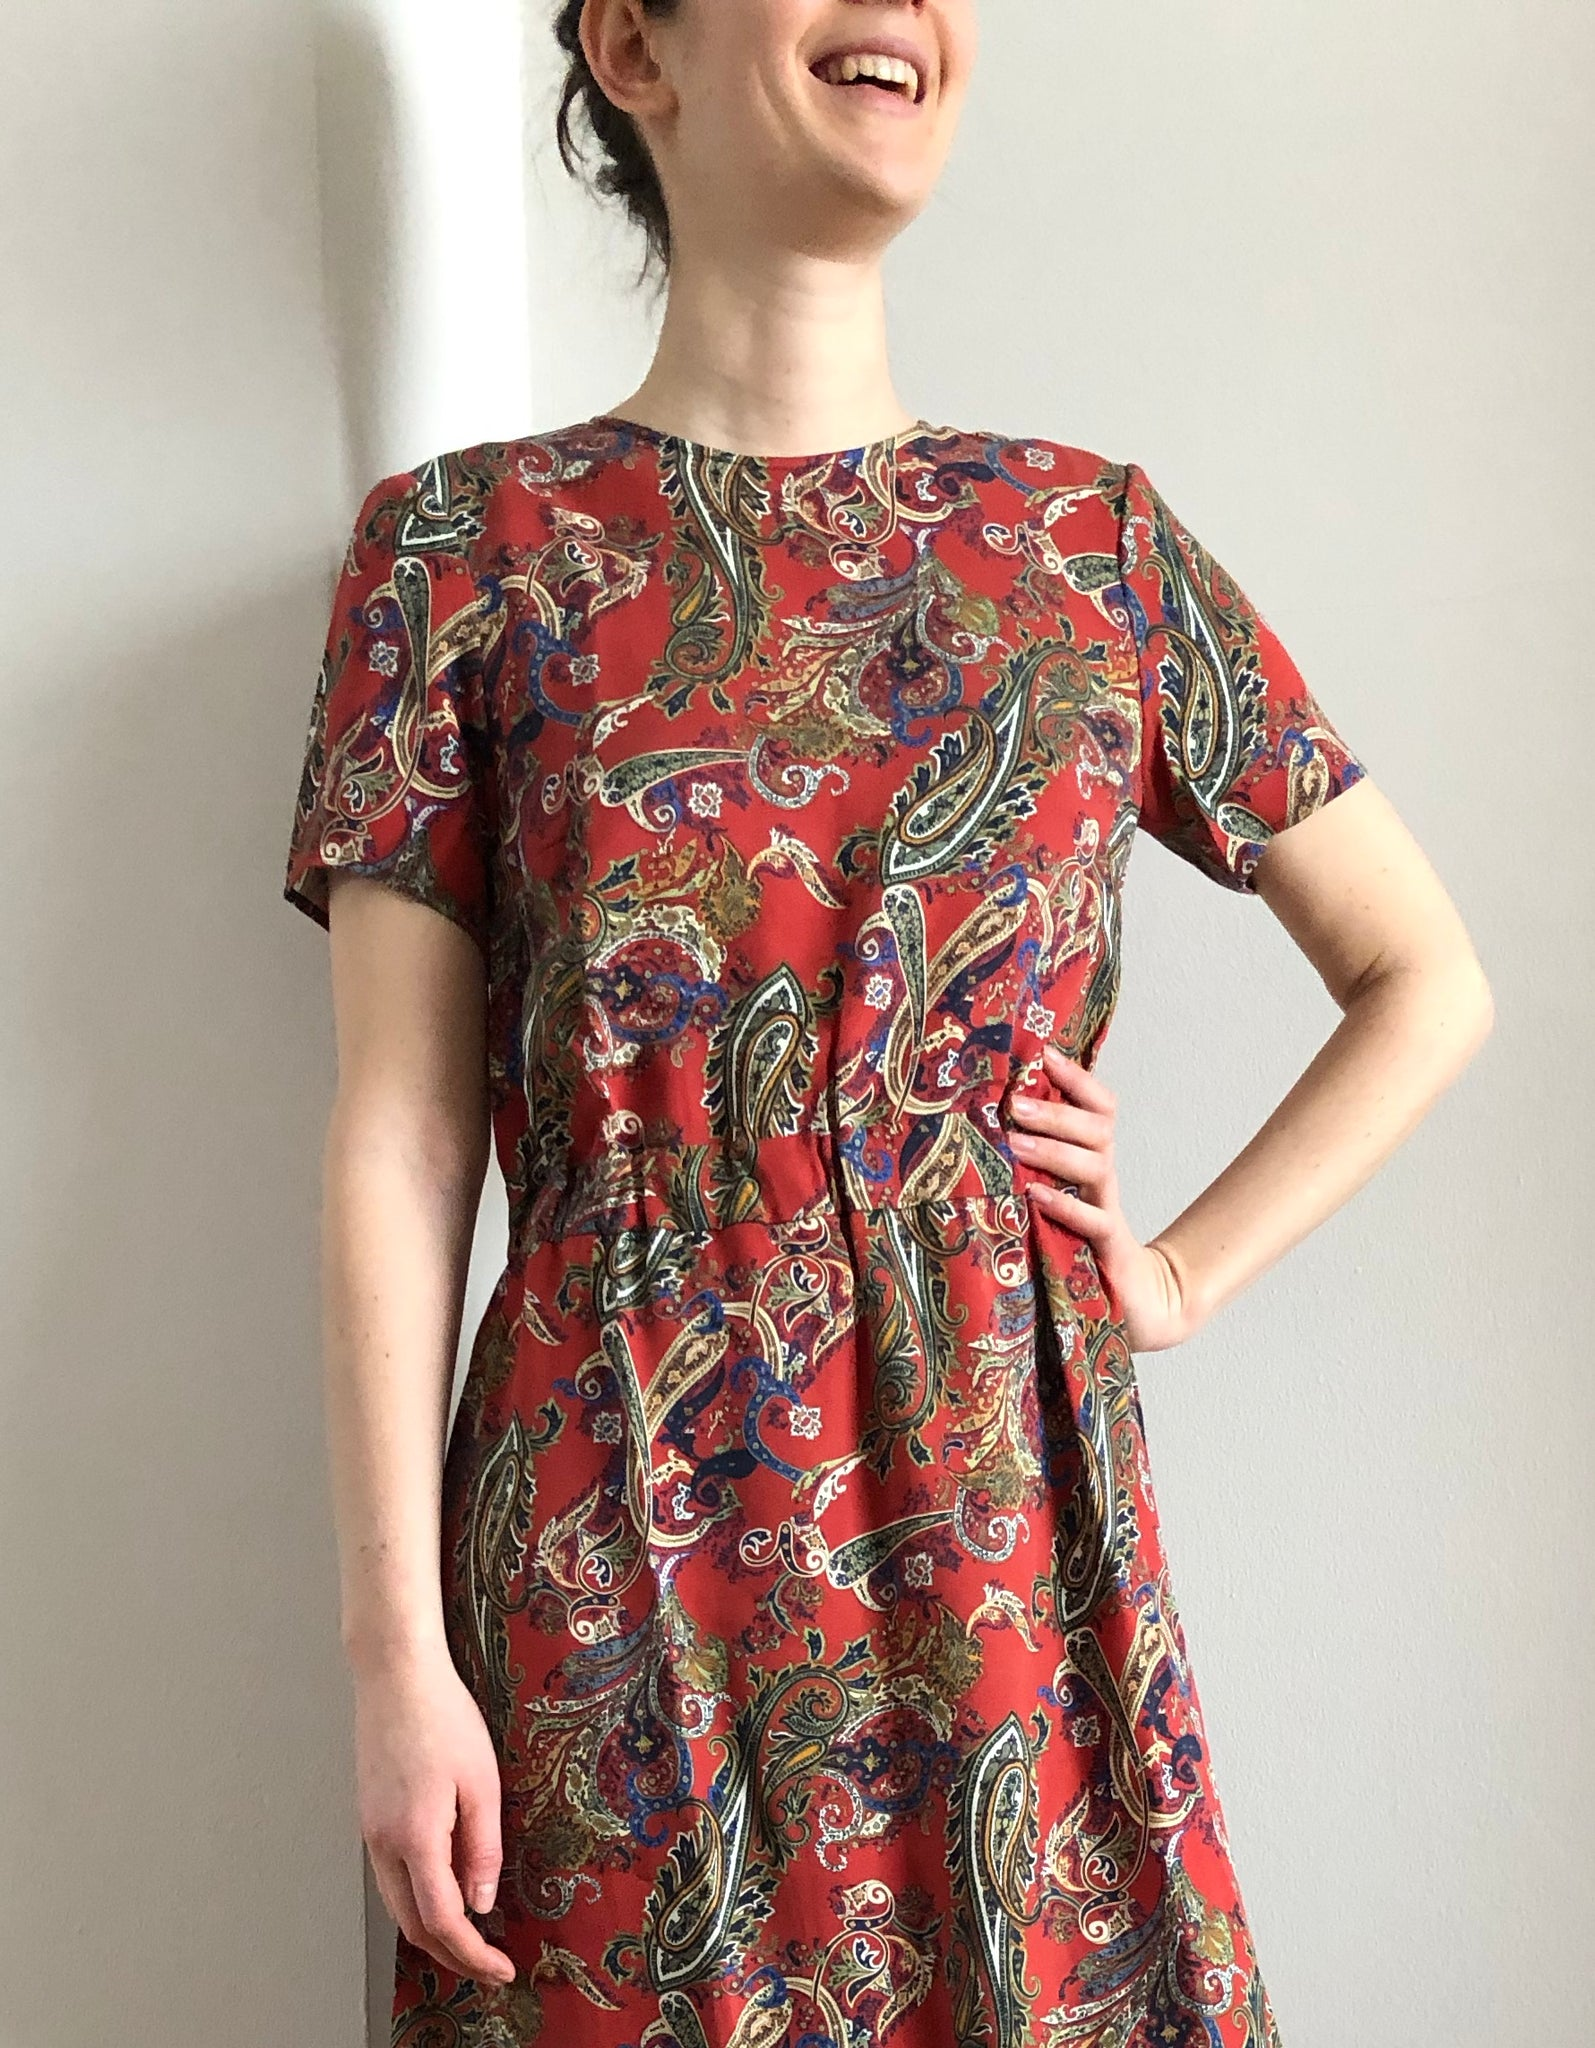 PAXTONIA MAXI DRESS brick paisley